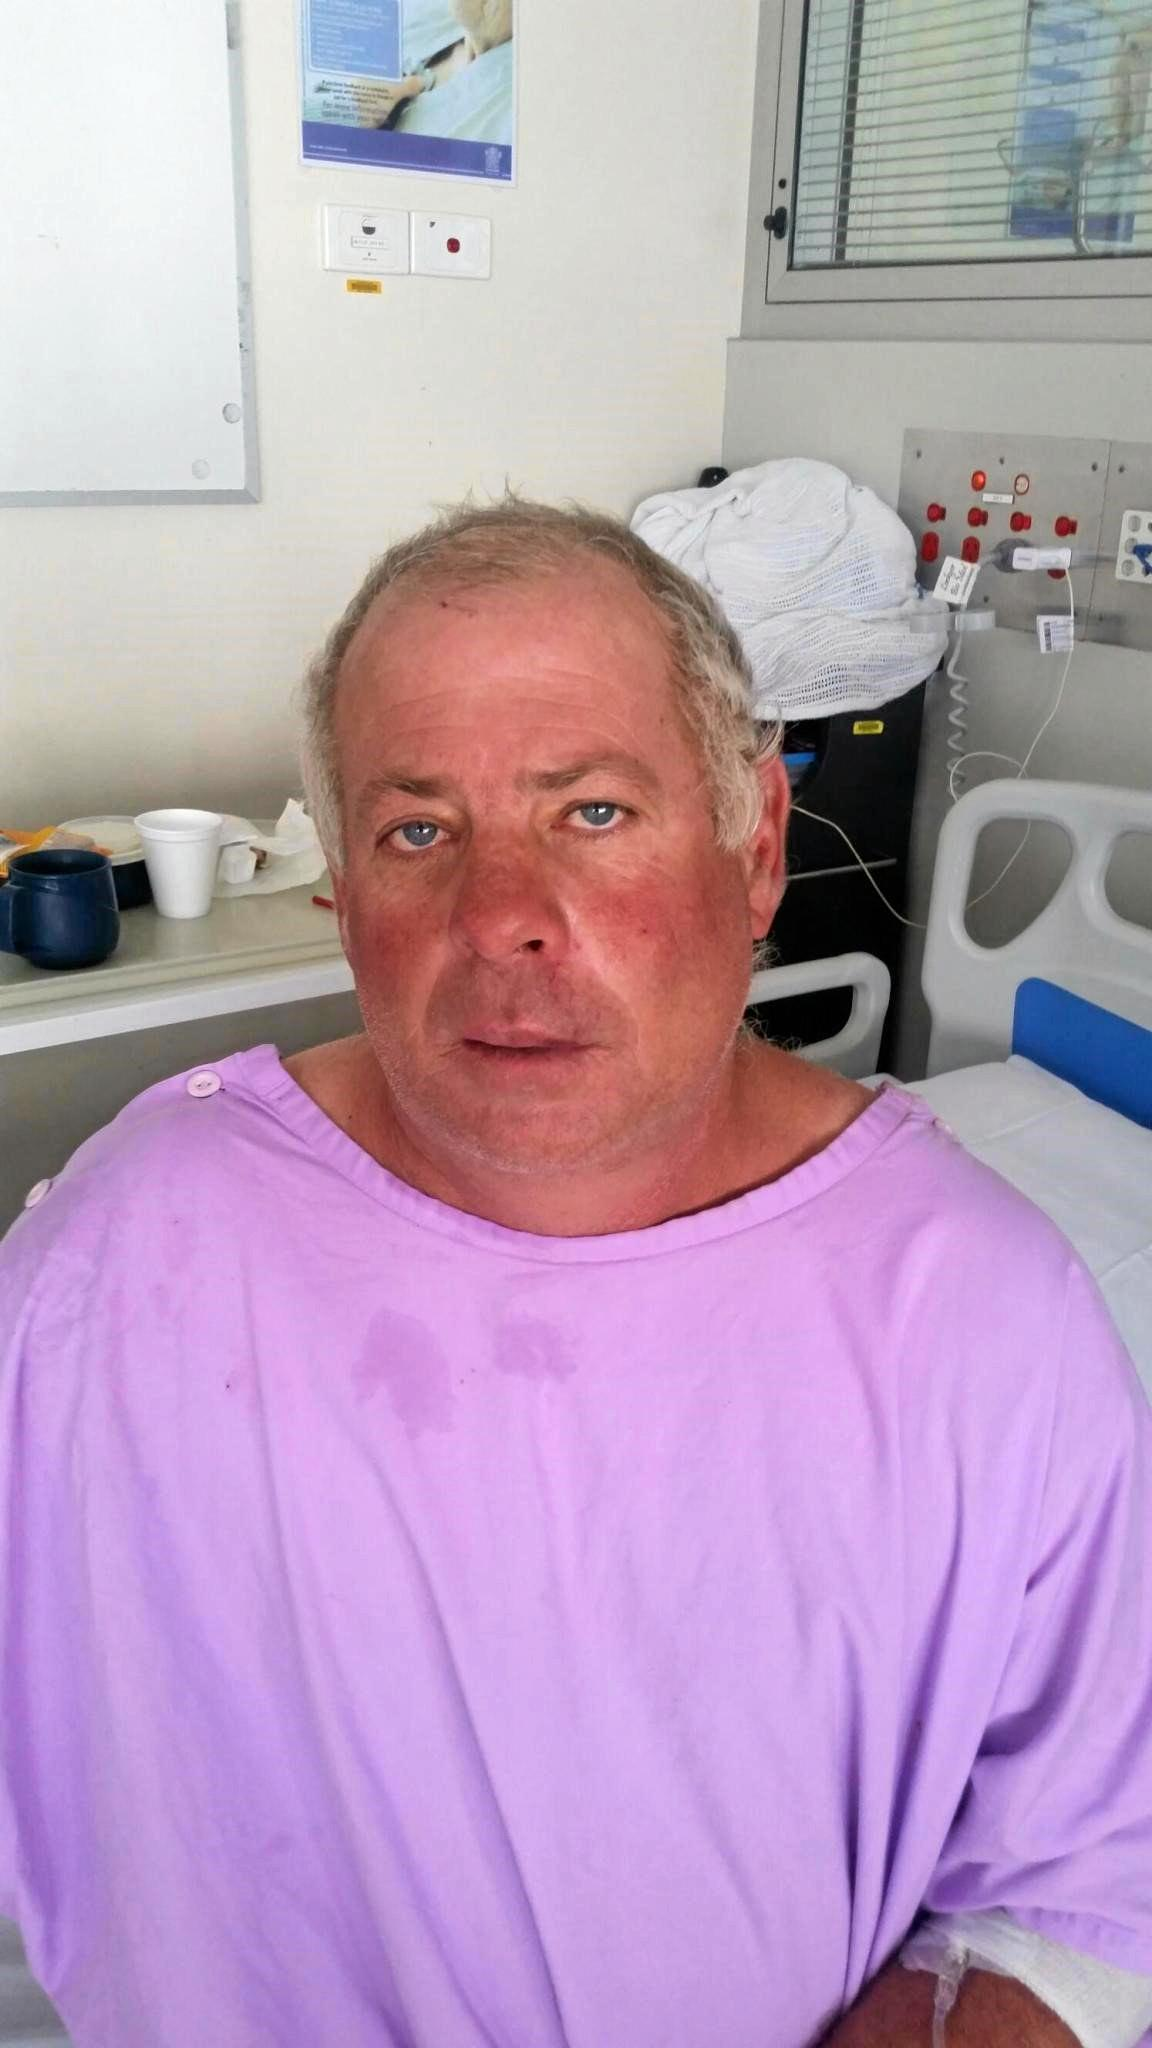 Steve Edmondstone in the Princess Alexandra Hospital in Brisbane after he was assaulted near the Wilsonton Hotel on Friday night.